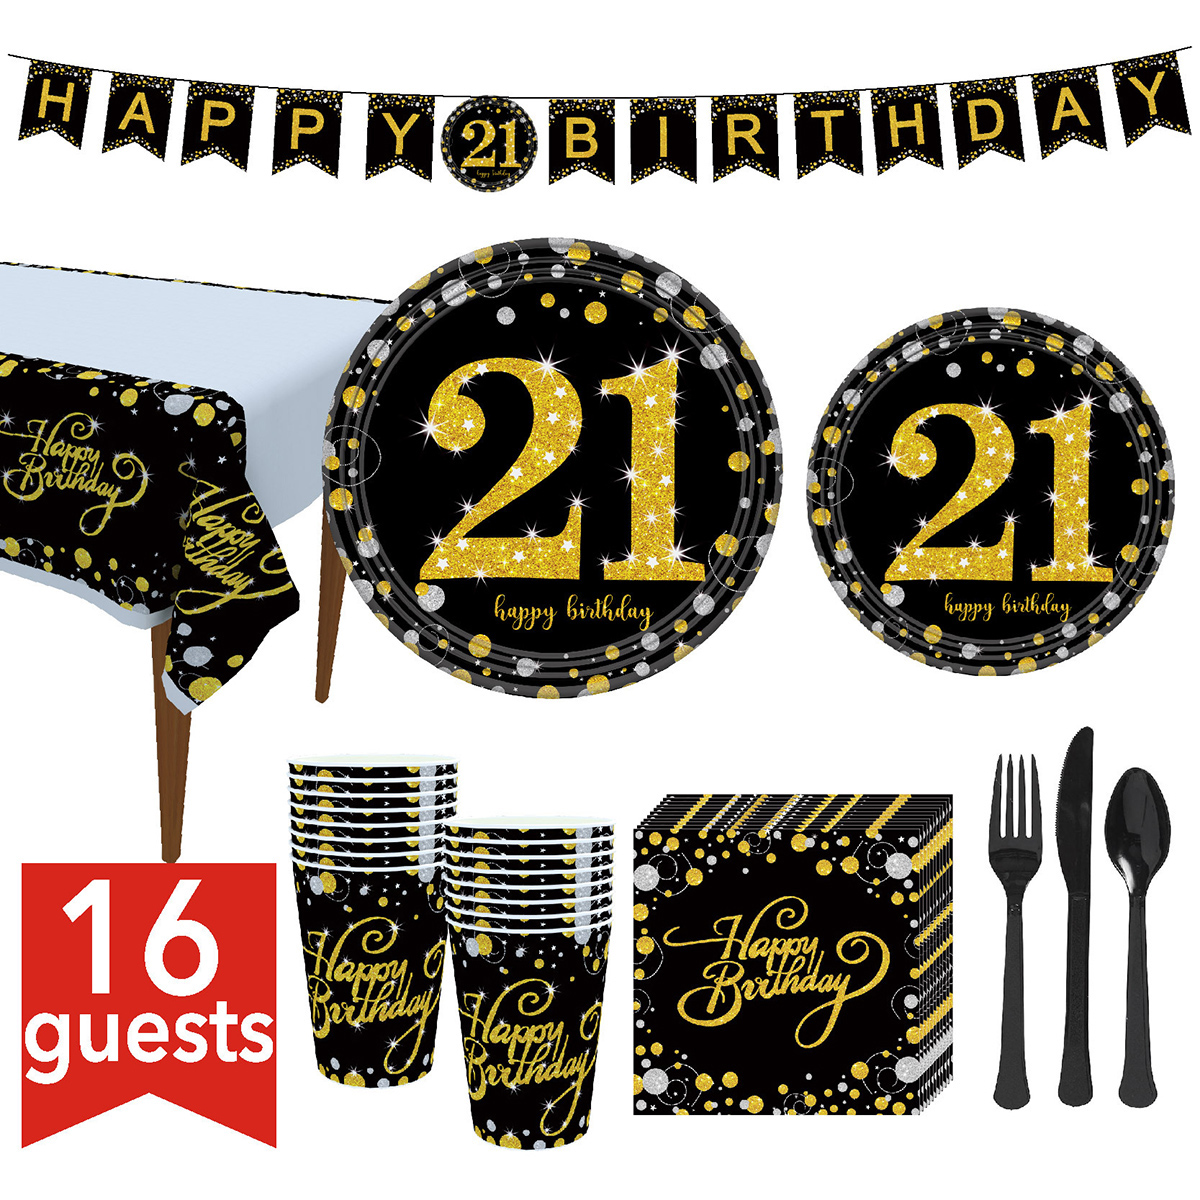 2019 Birthday Party Tableware Kit Birthday Party Supplies Tableware Set Plates Cups Napkins Banner Tablecloth Fork Knife Spoon